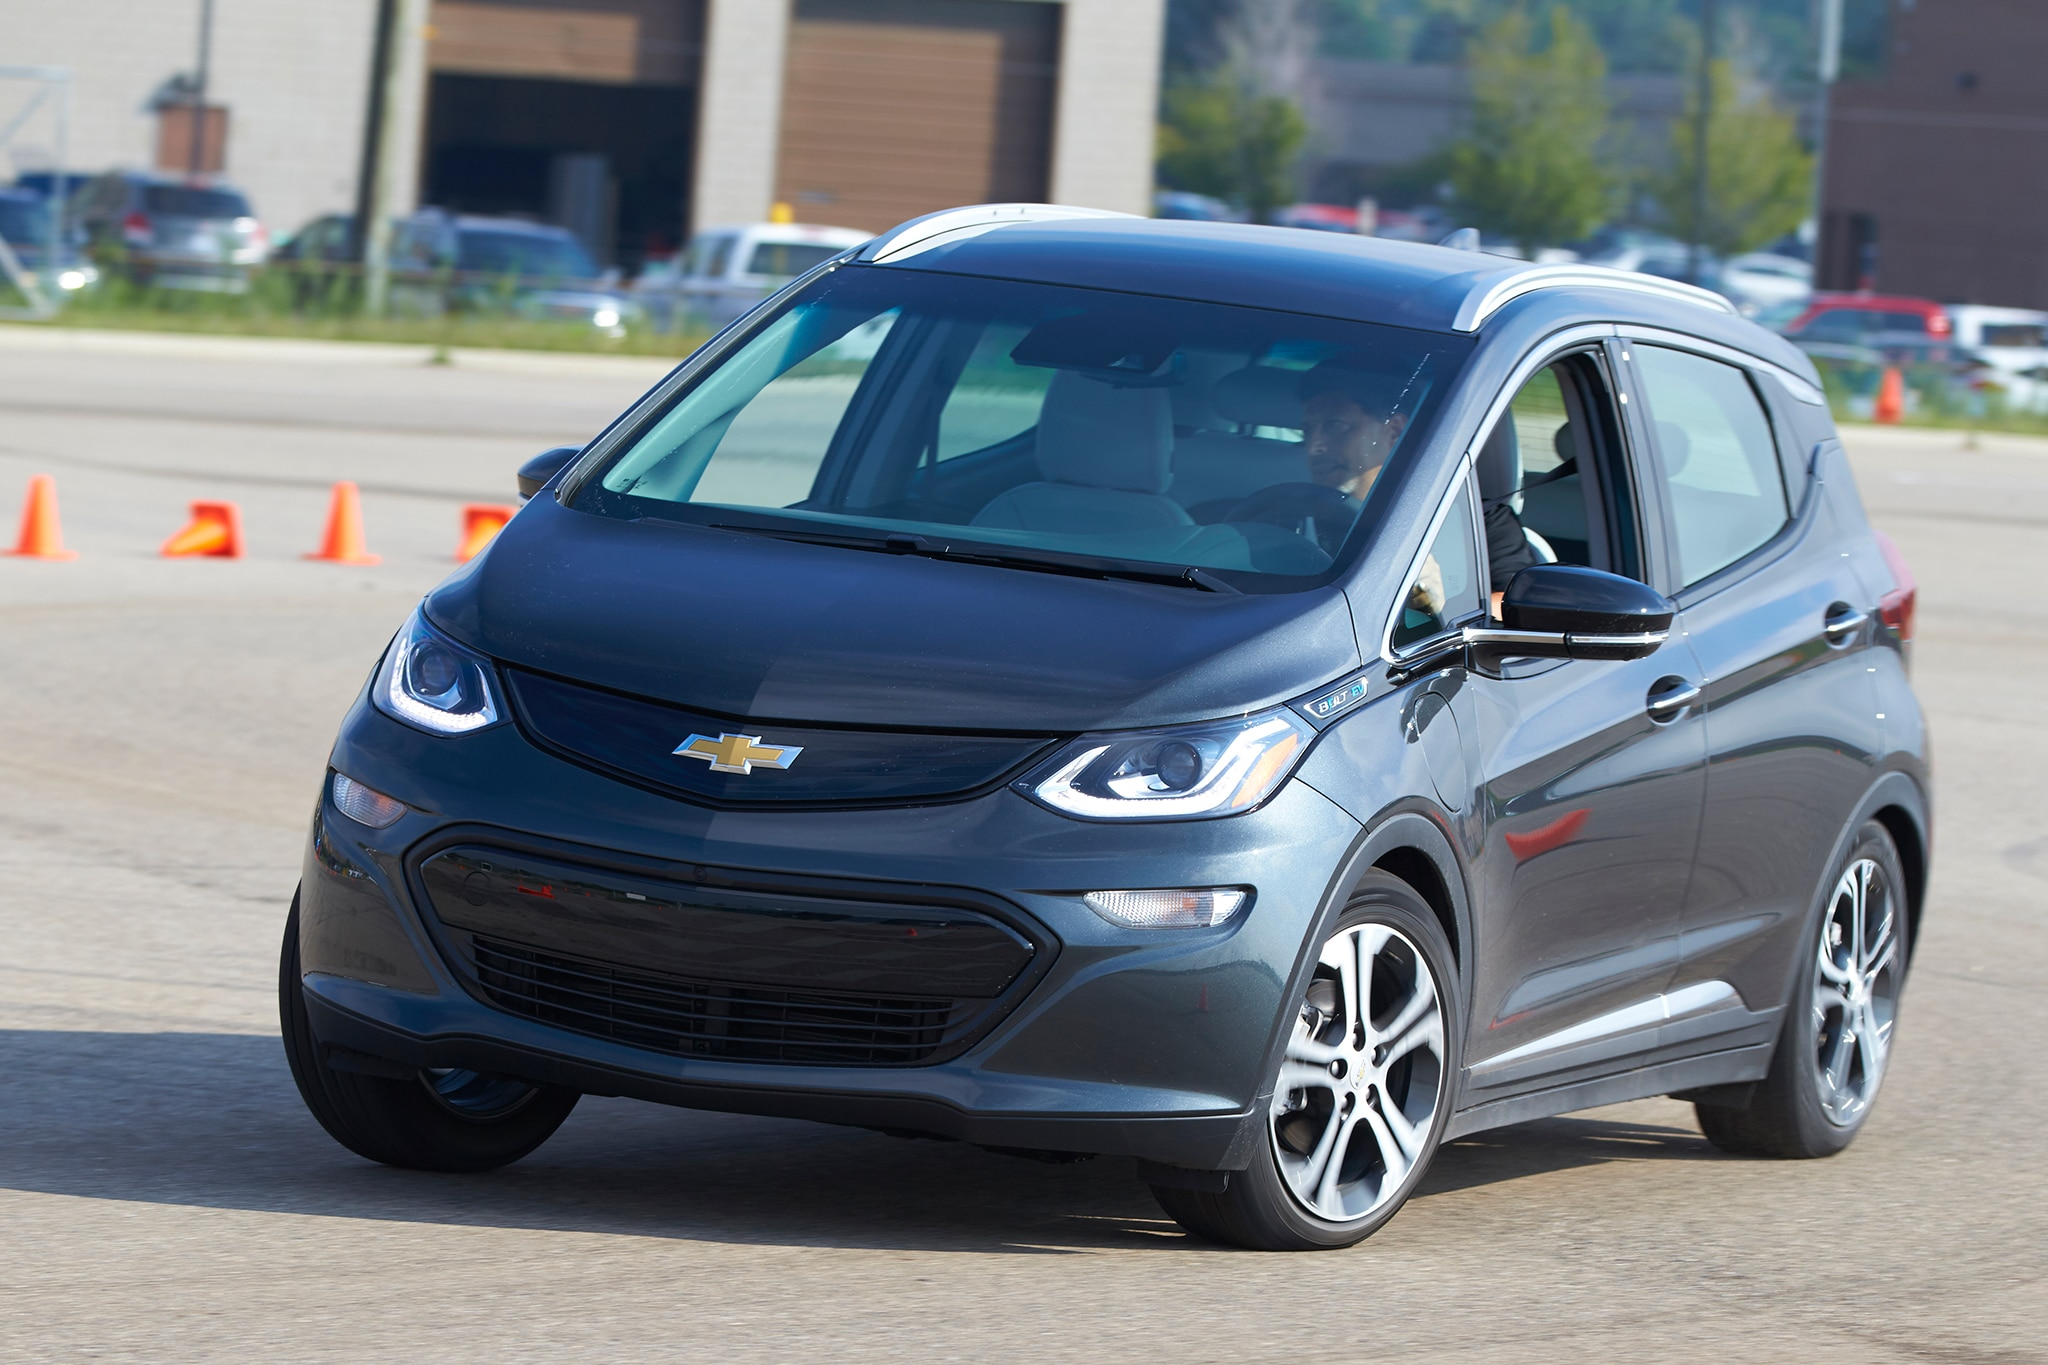 2017 Chevrolet Bolt EV Front Three Quarter In Motion 05